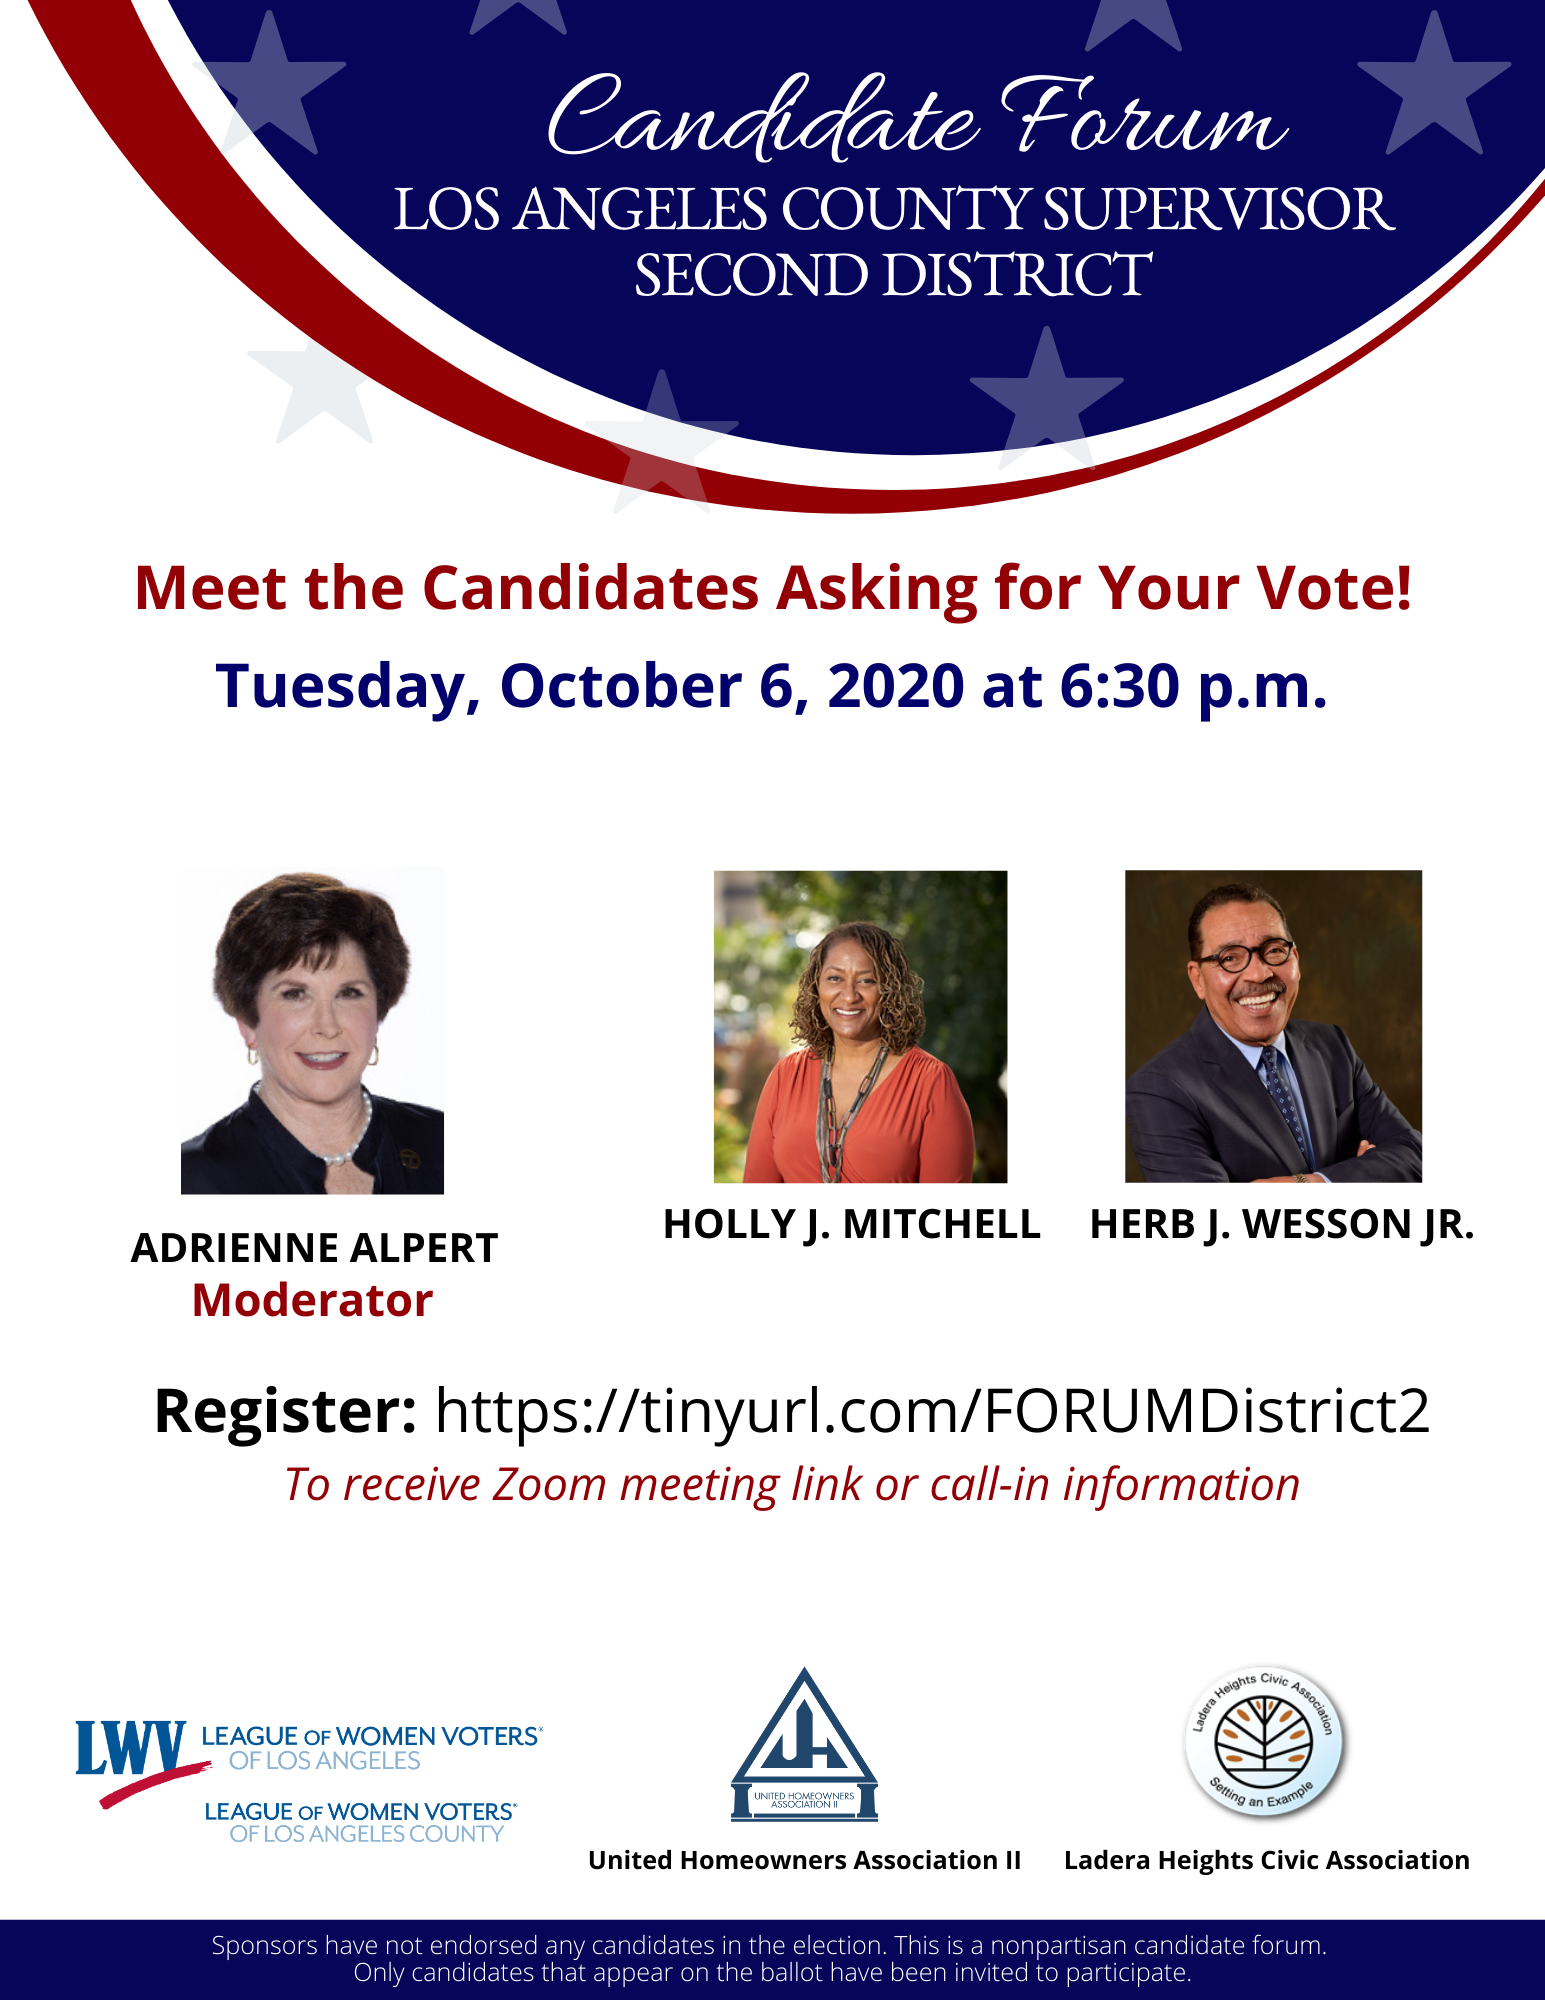 County Supervisor Candidate Forum